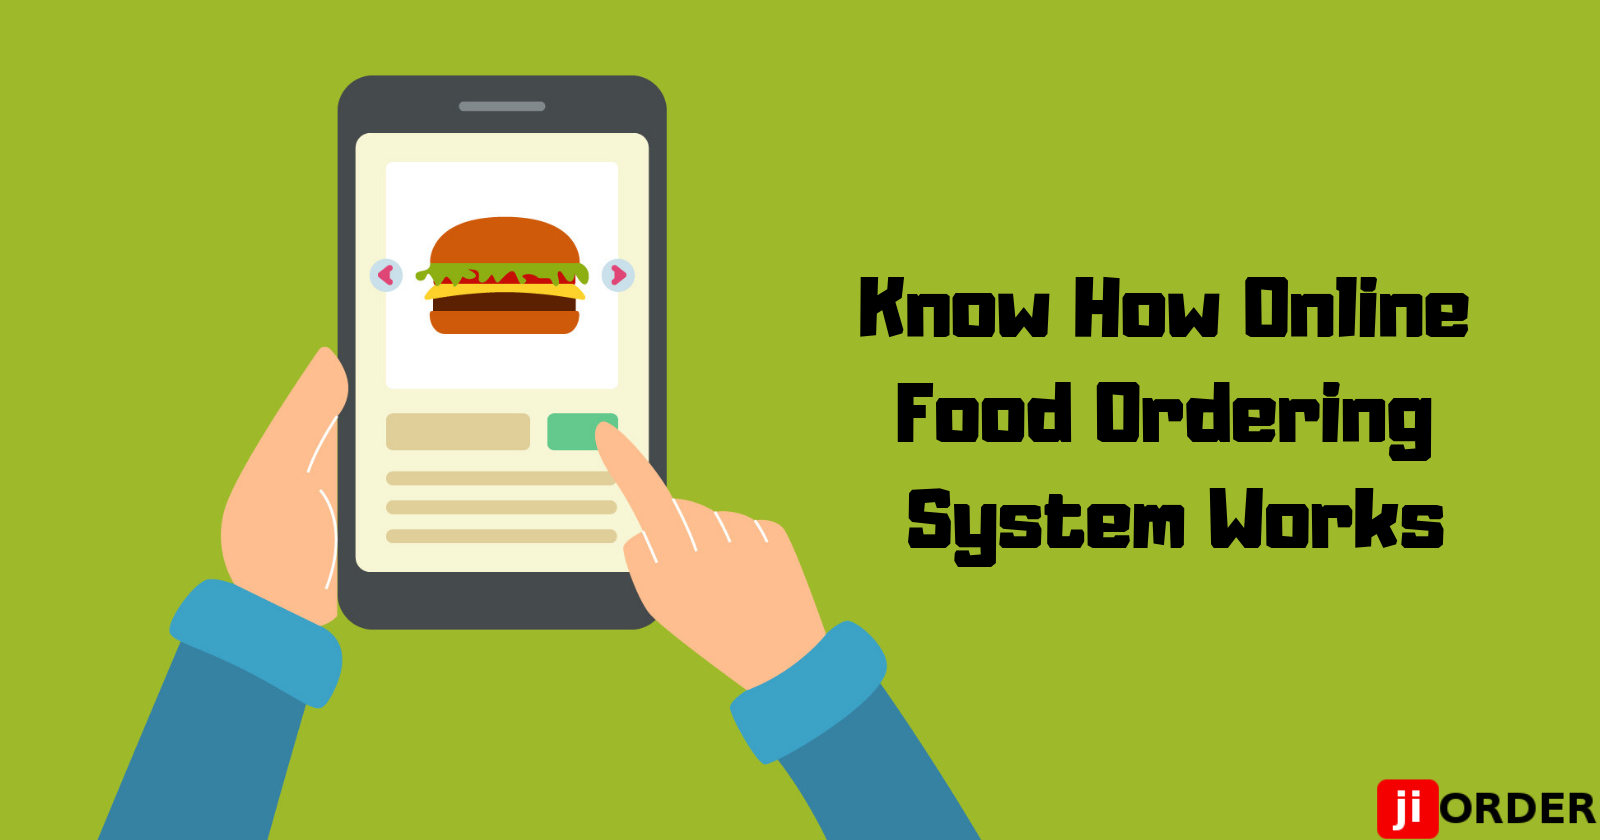 Know How Online Food Ordering System Works